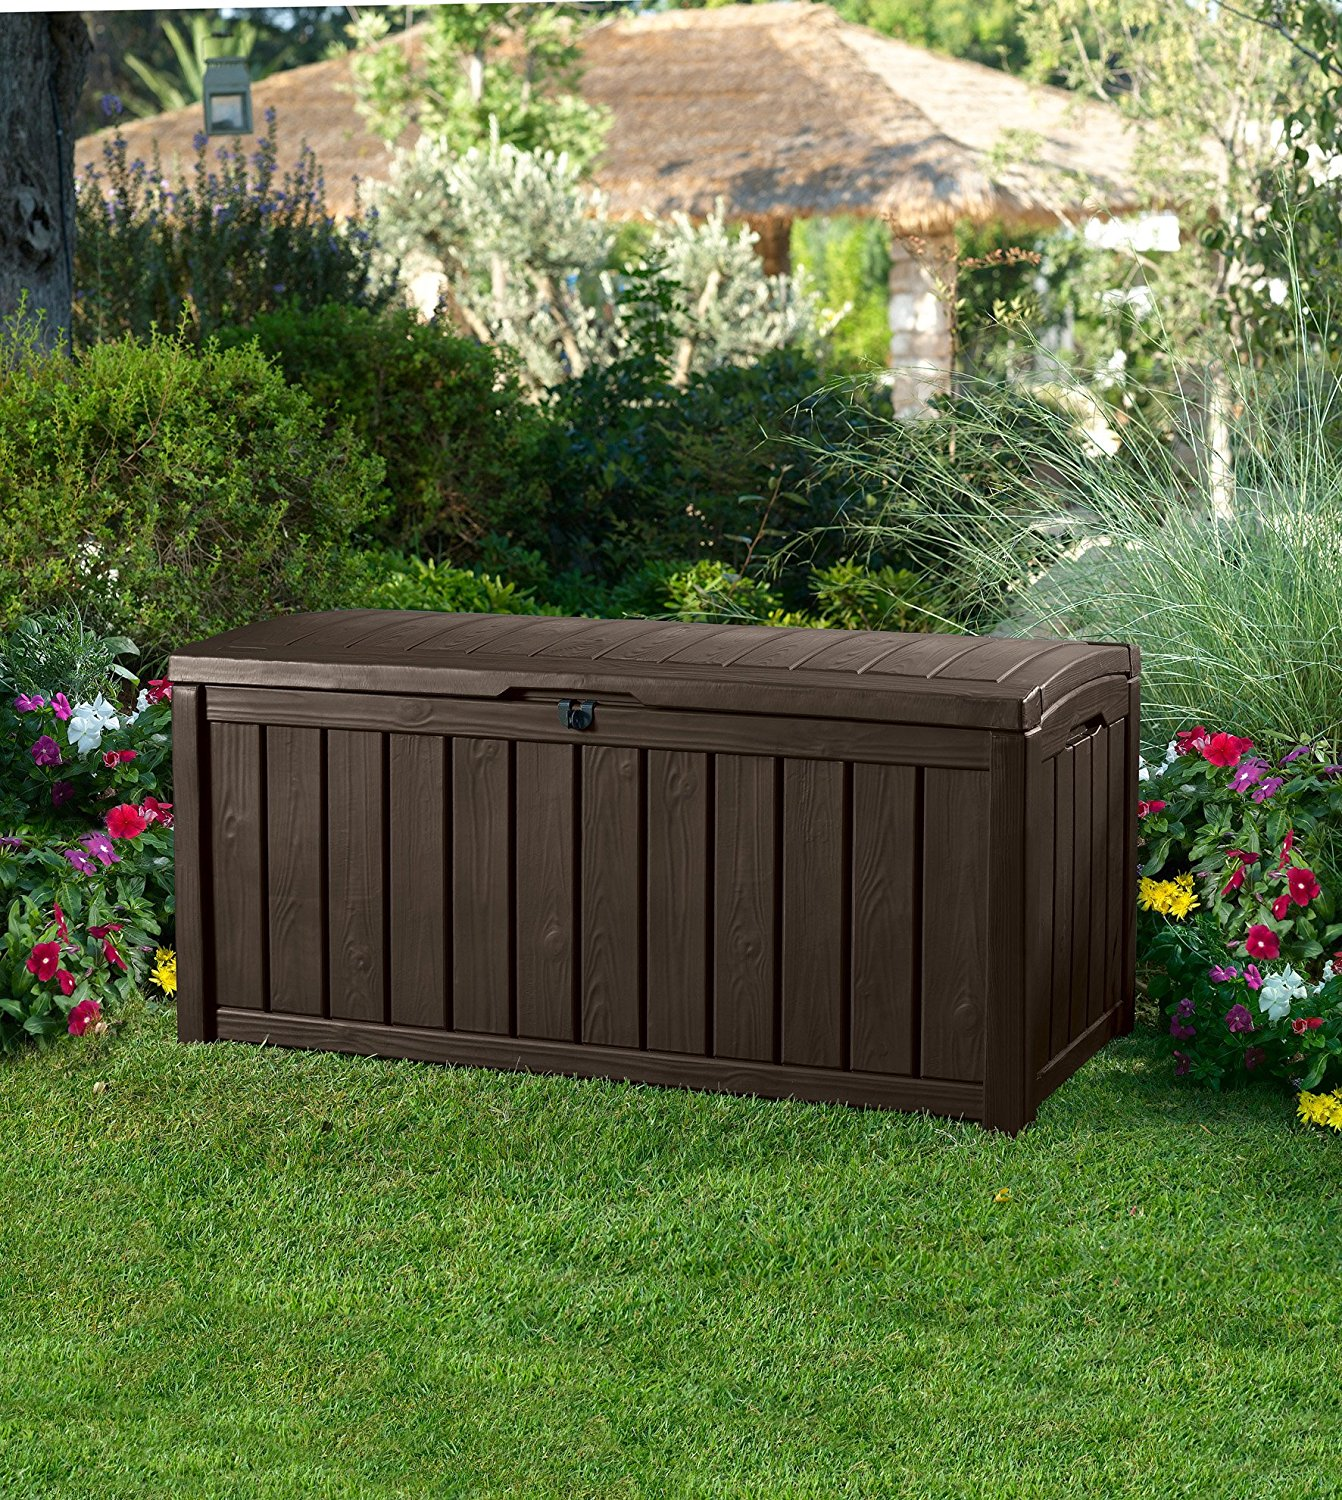 200 Gallon Deck Storage Box | Keter 150 Gallon Deck Box | Deck Box 150 Gallon